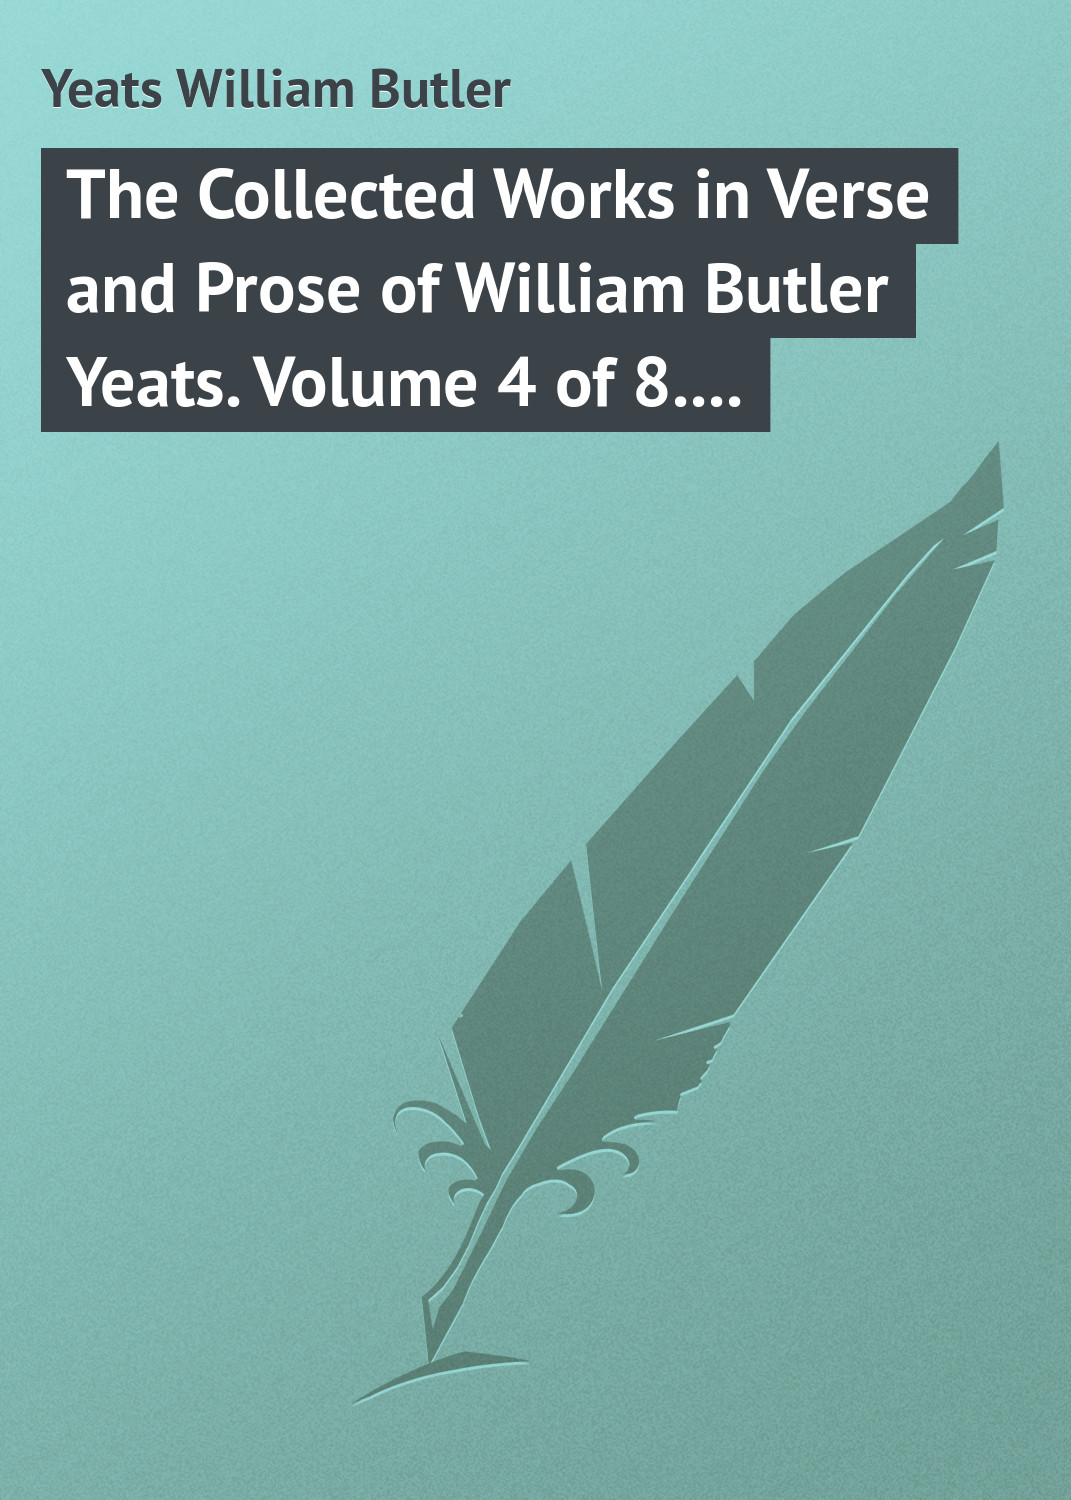 William Butler Yeats The Collected Works in Verse and Prose of William Butler Yeats. Volume 4 of 8. The Hour-glass. Cathleen ni Houlihan. The Golden Helmet. The Irish Dramatic Movement william butler yeats the tables of the law